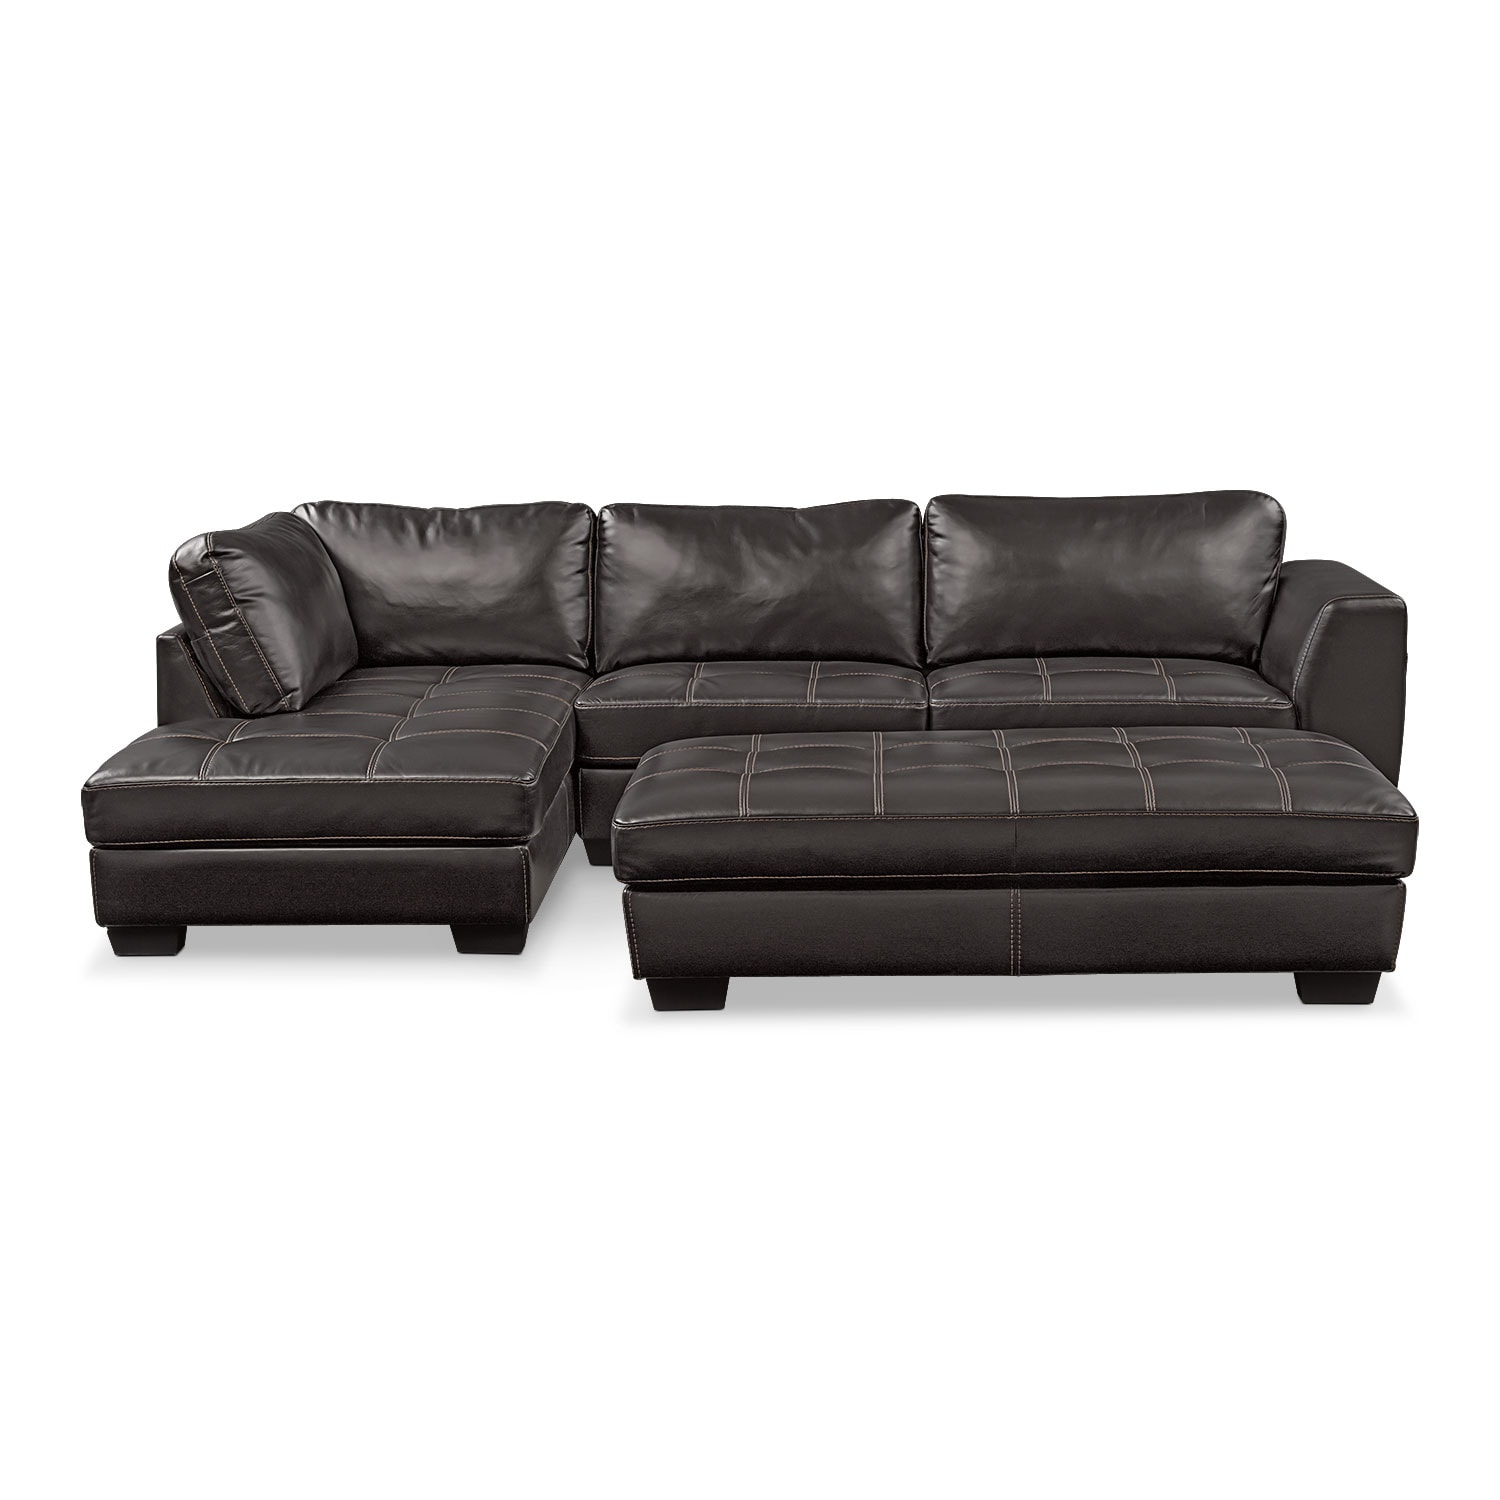 Santana 2 piece sectional with chaise and cocktail ottoman set value city furniture and mattresses